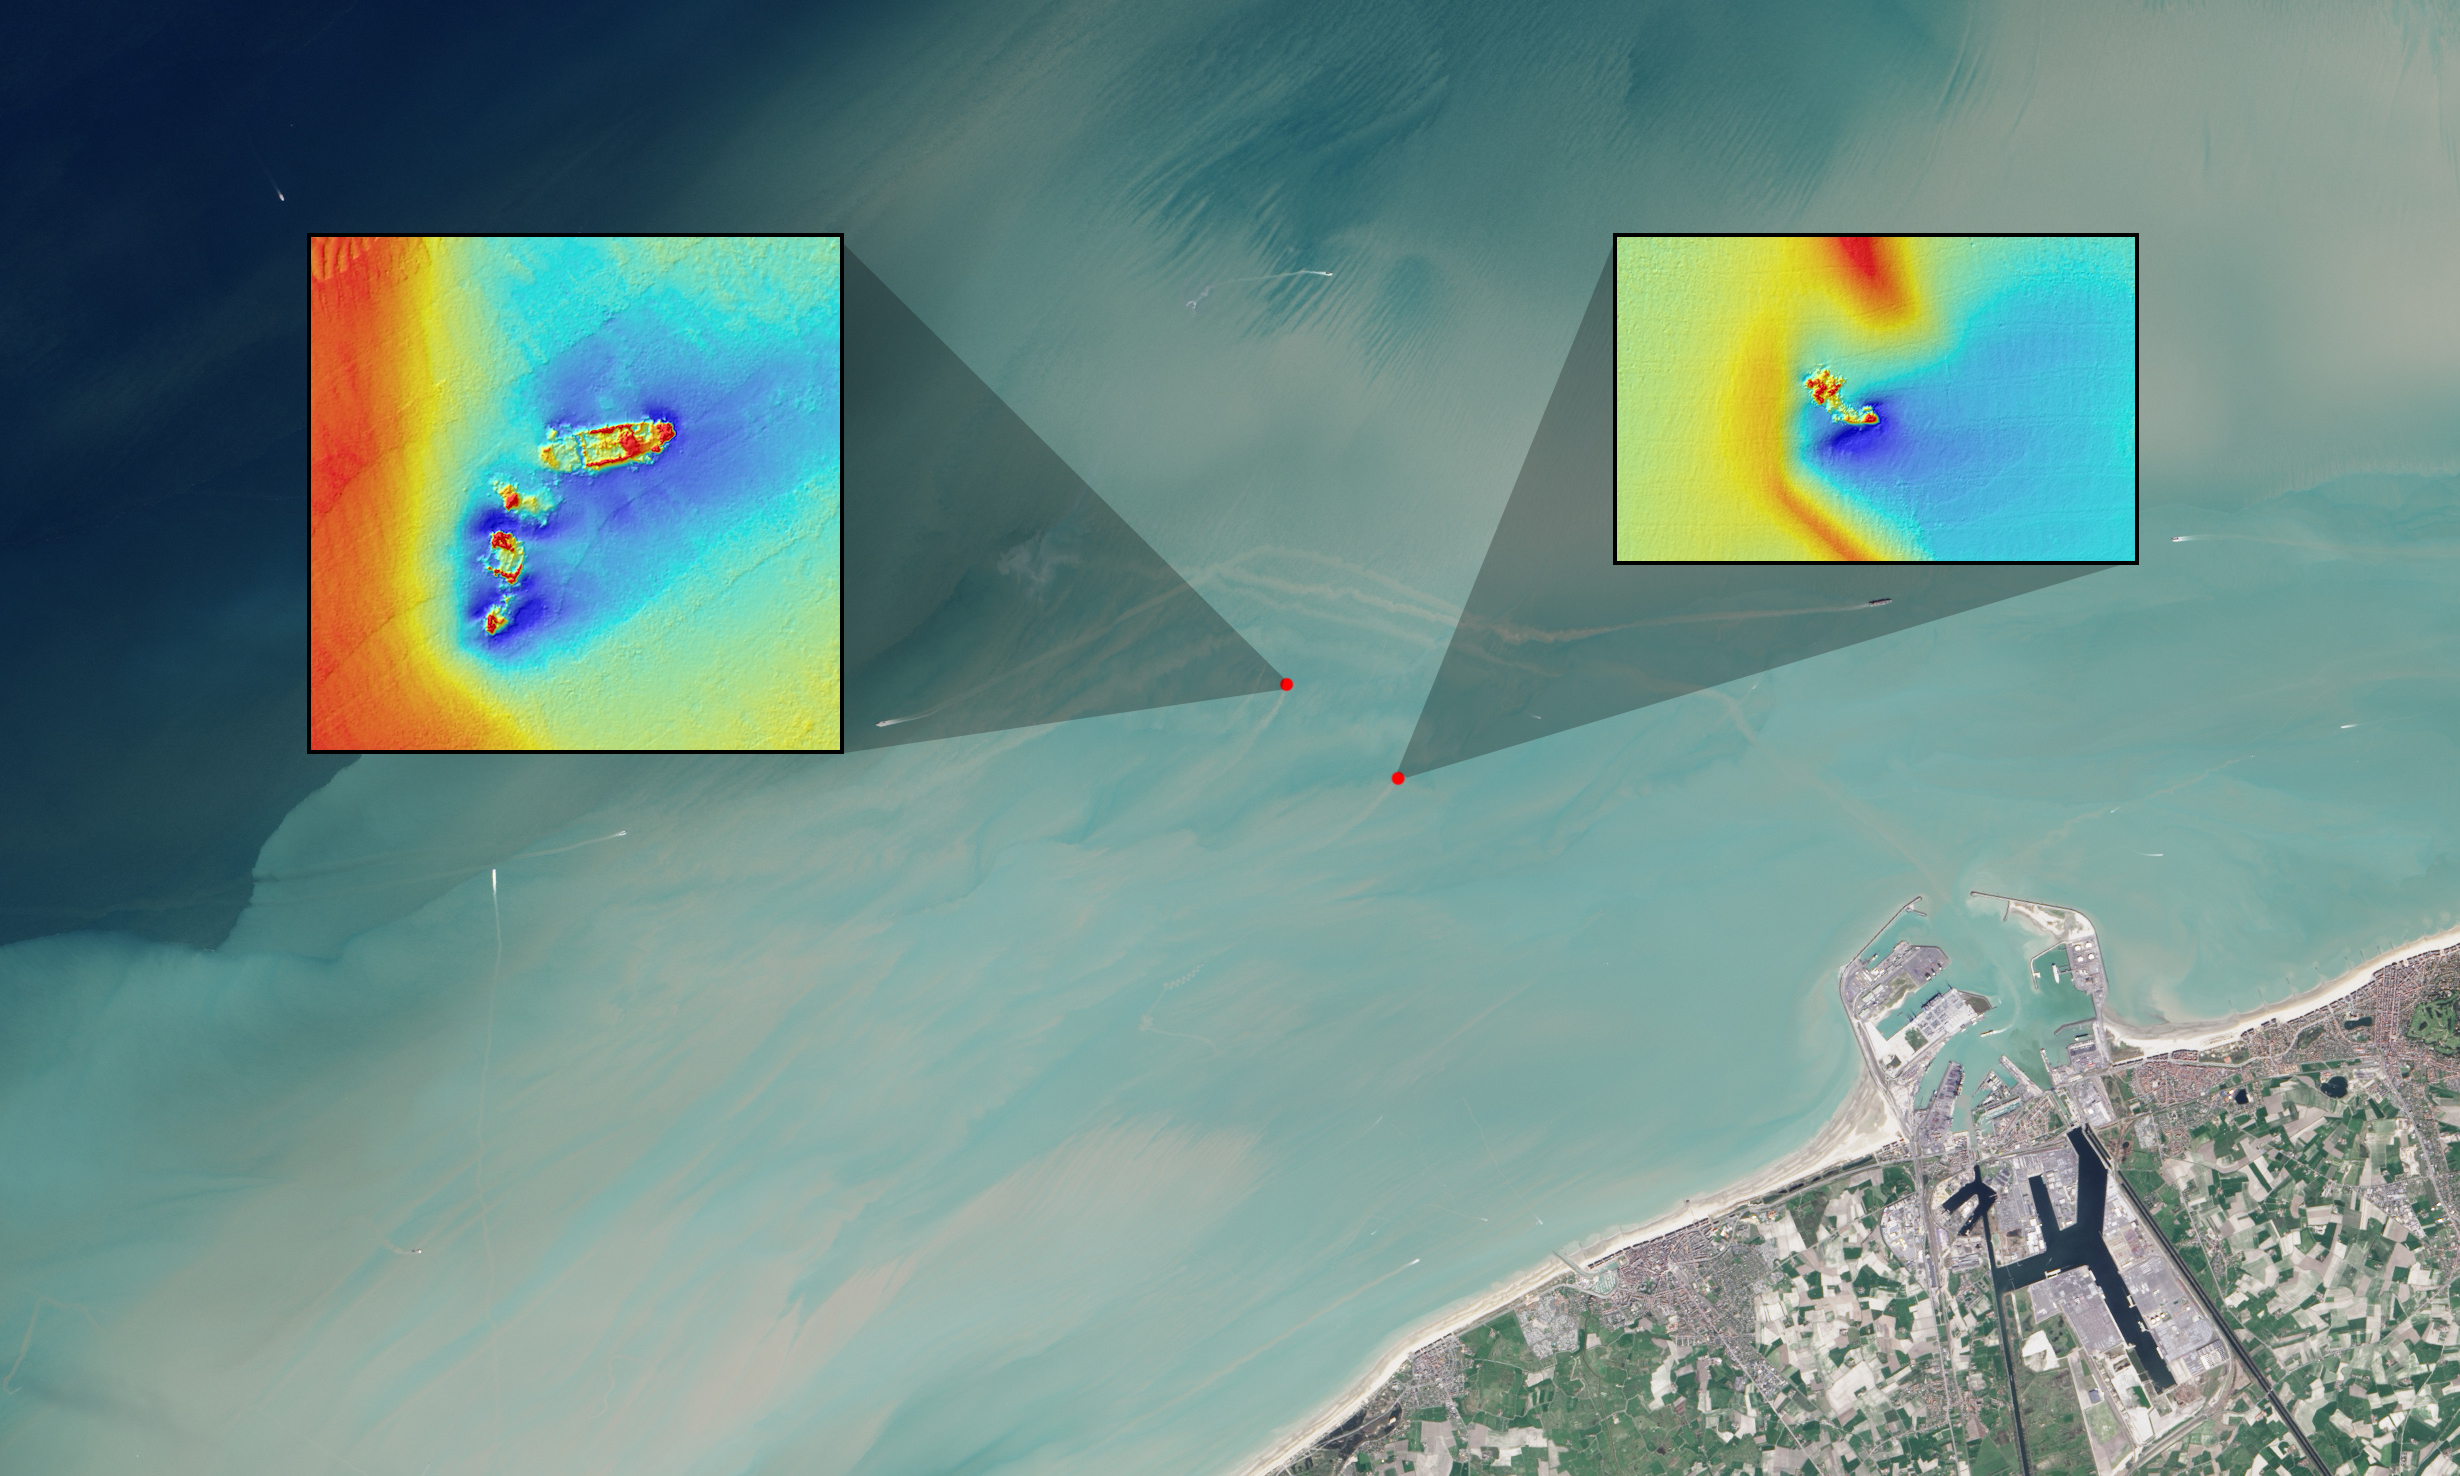 Landsat Spots Foundered Ships In Coastal Waters NASA - Search satellite maps